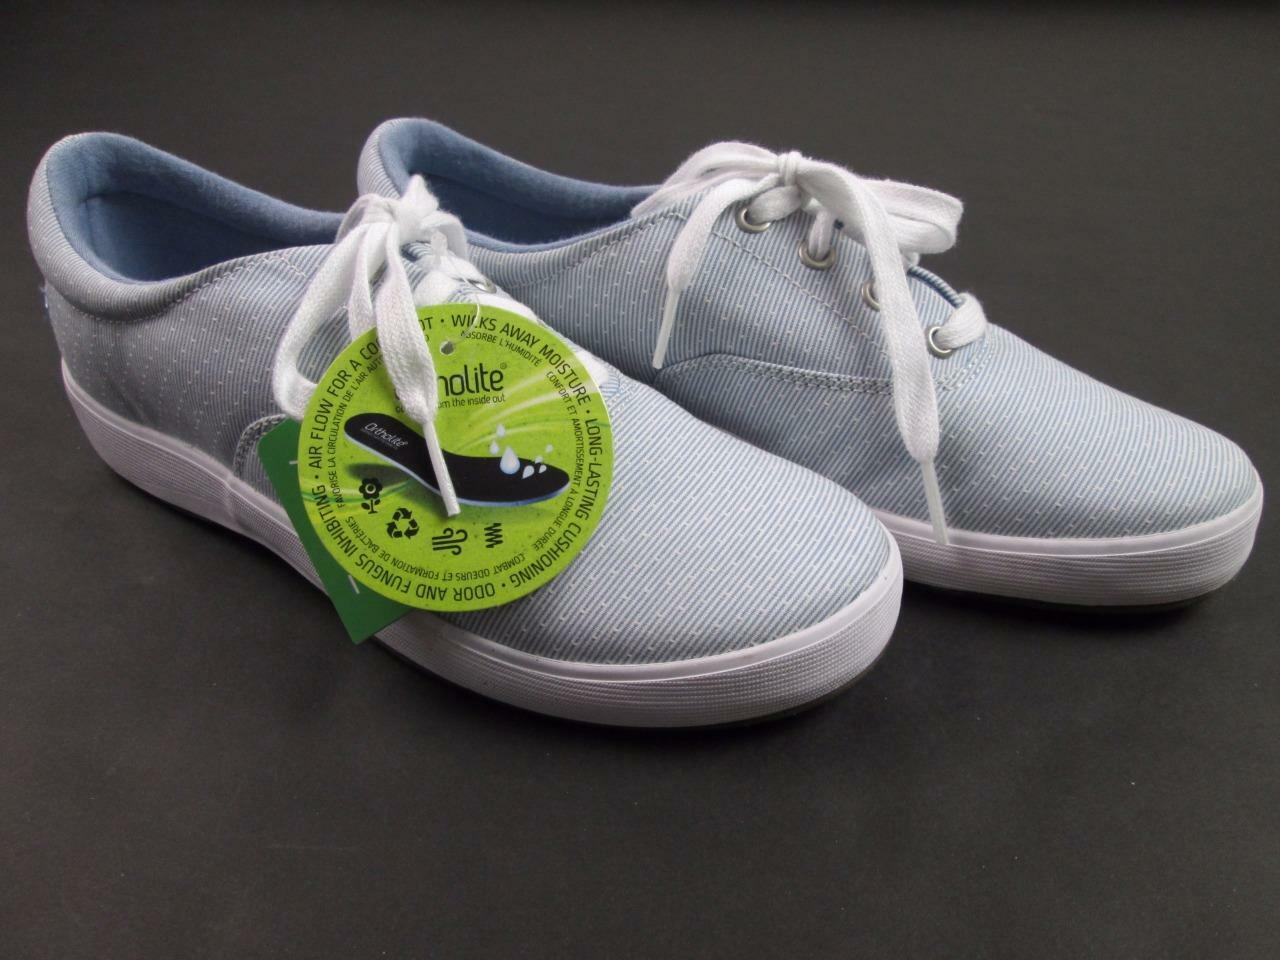 GRASSHOPPERS WOMENS blueE WHITE ORTHOLITE WORK SNEAKERS TENNIS SHOE 6.5 NEW